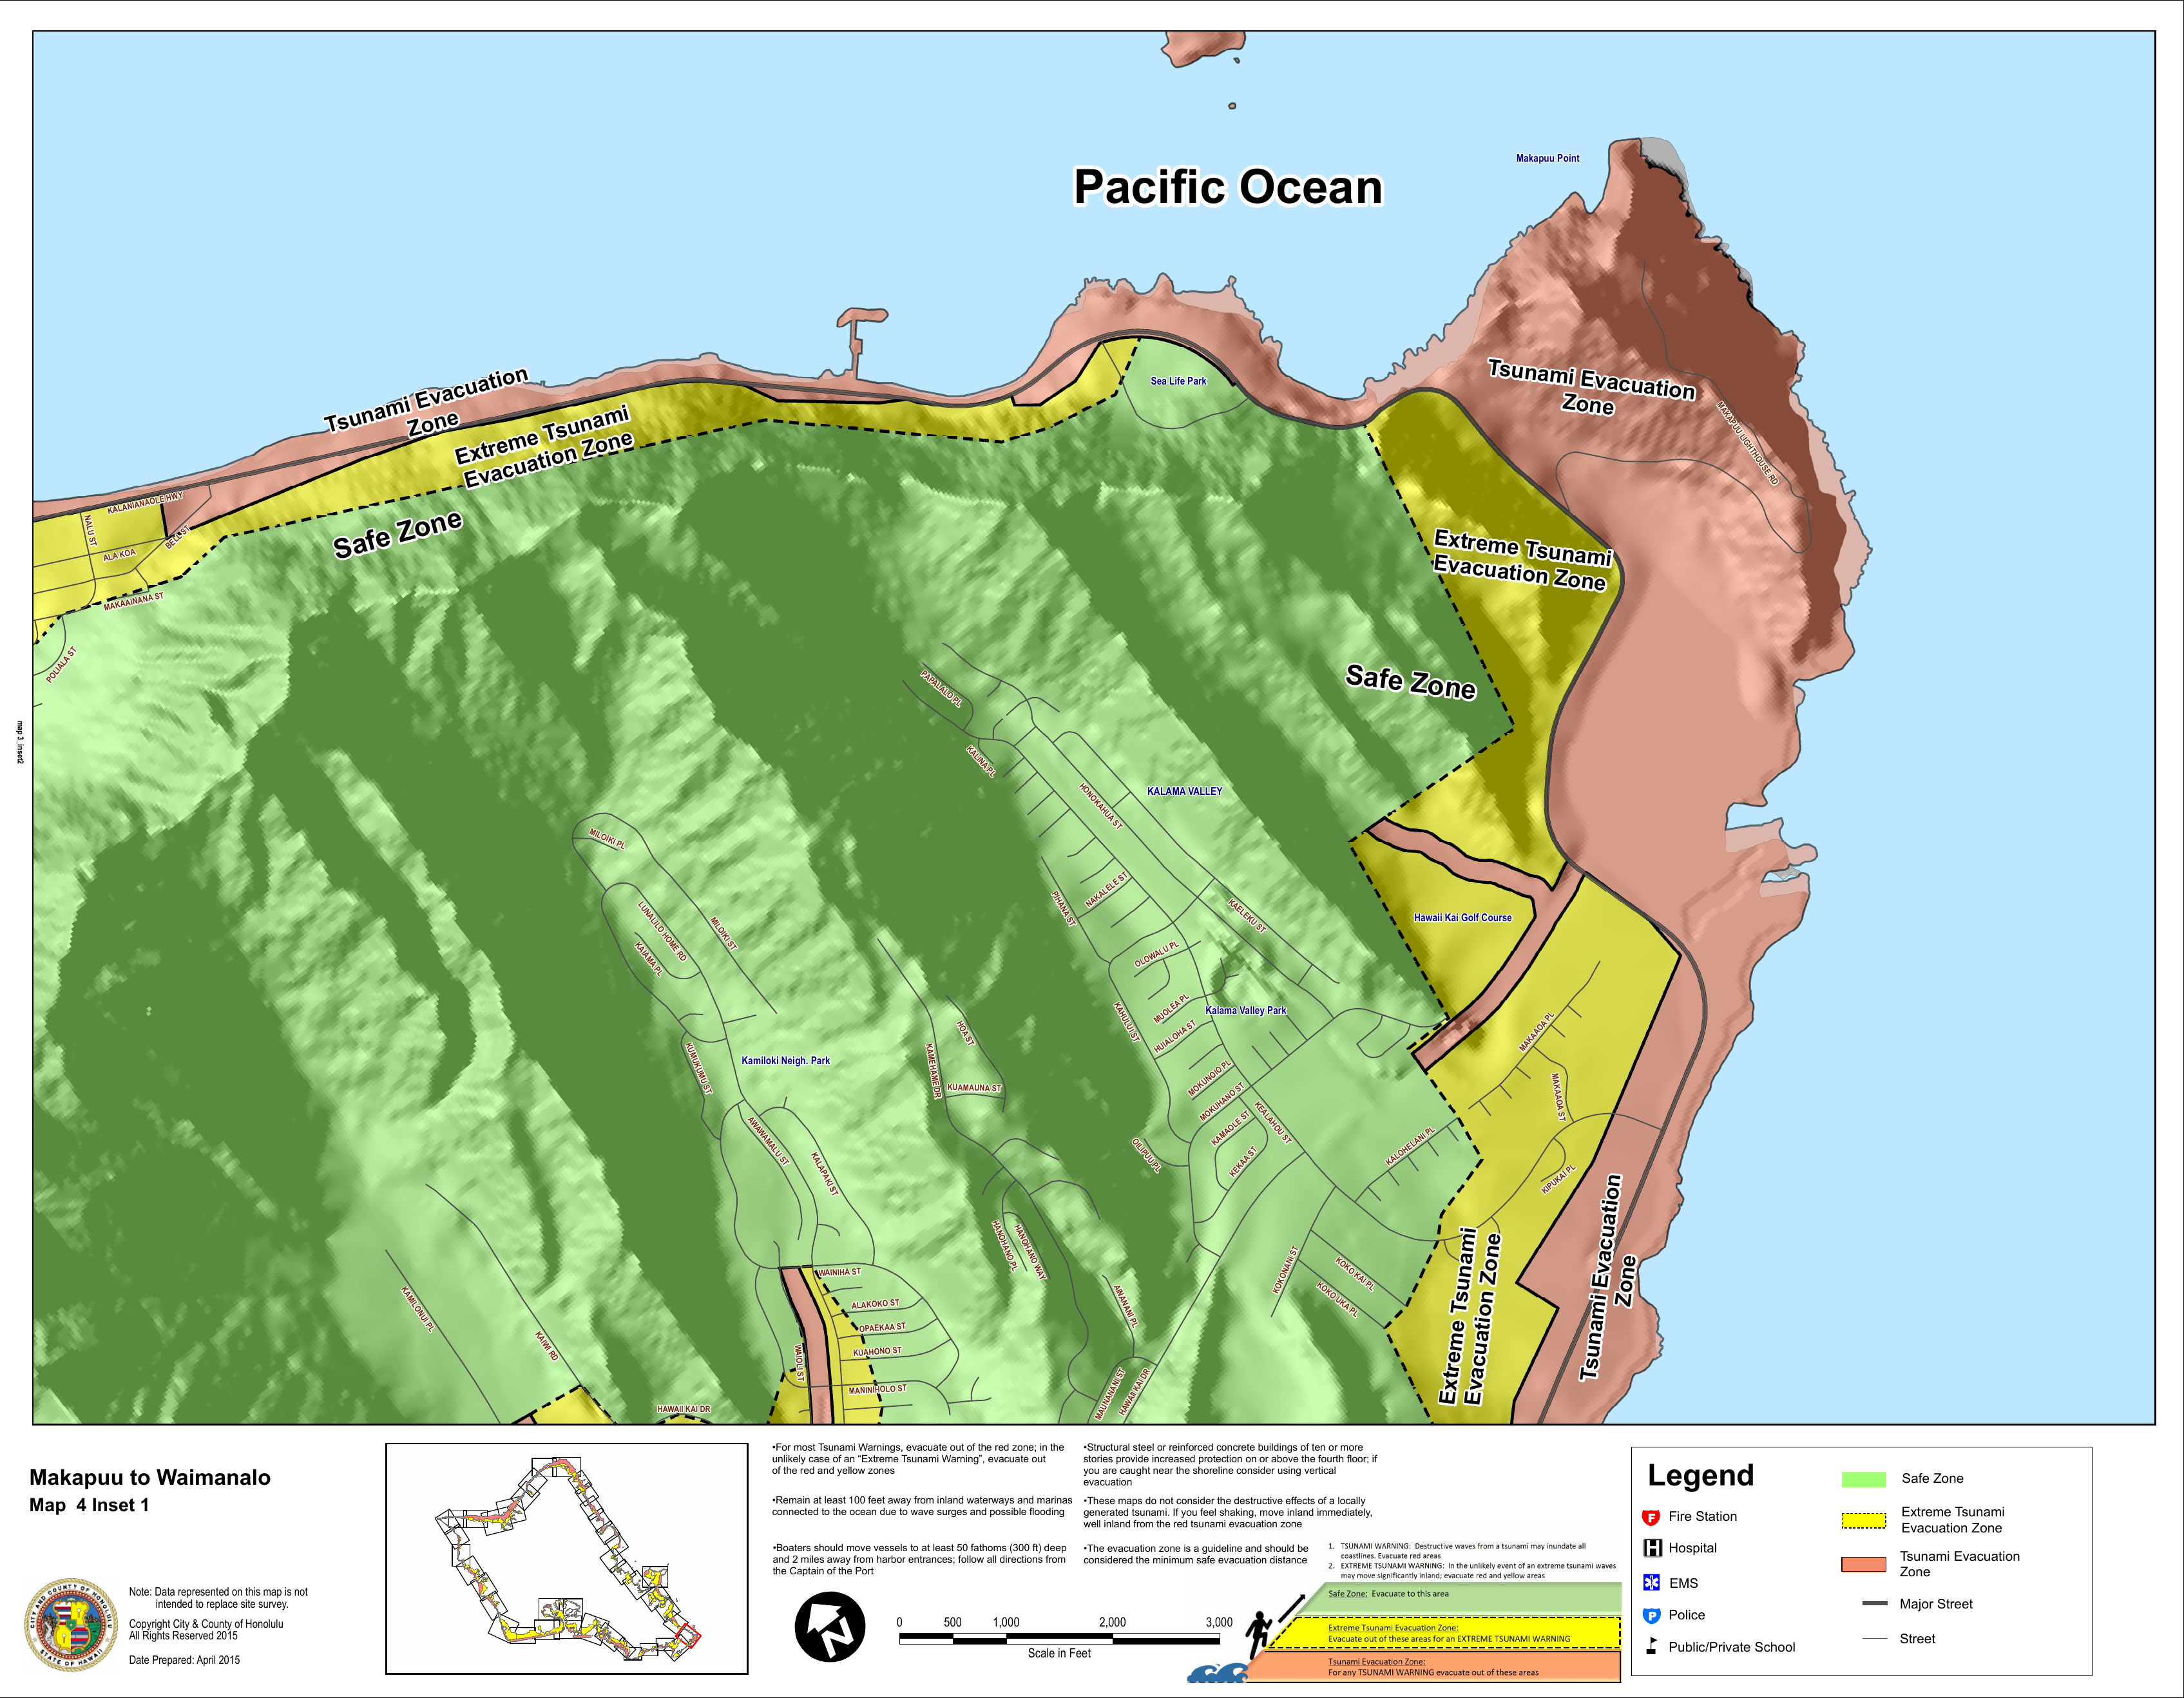 Makapuu point strip map